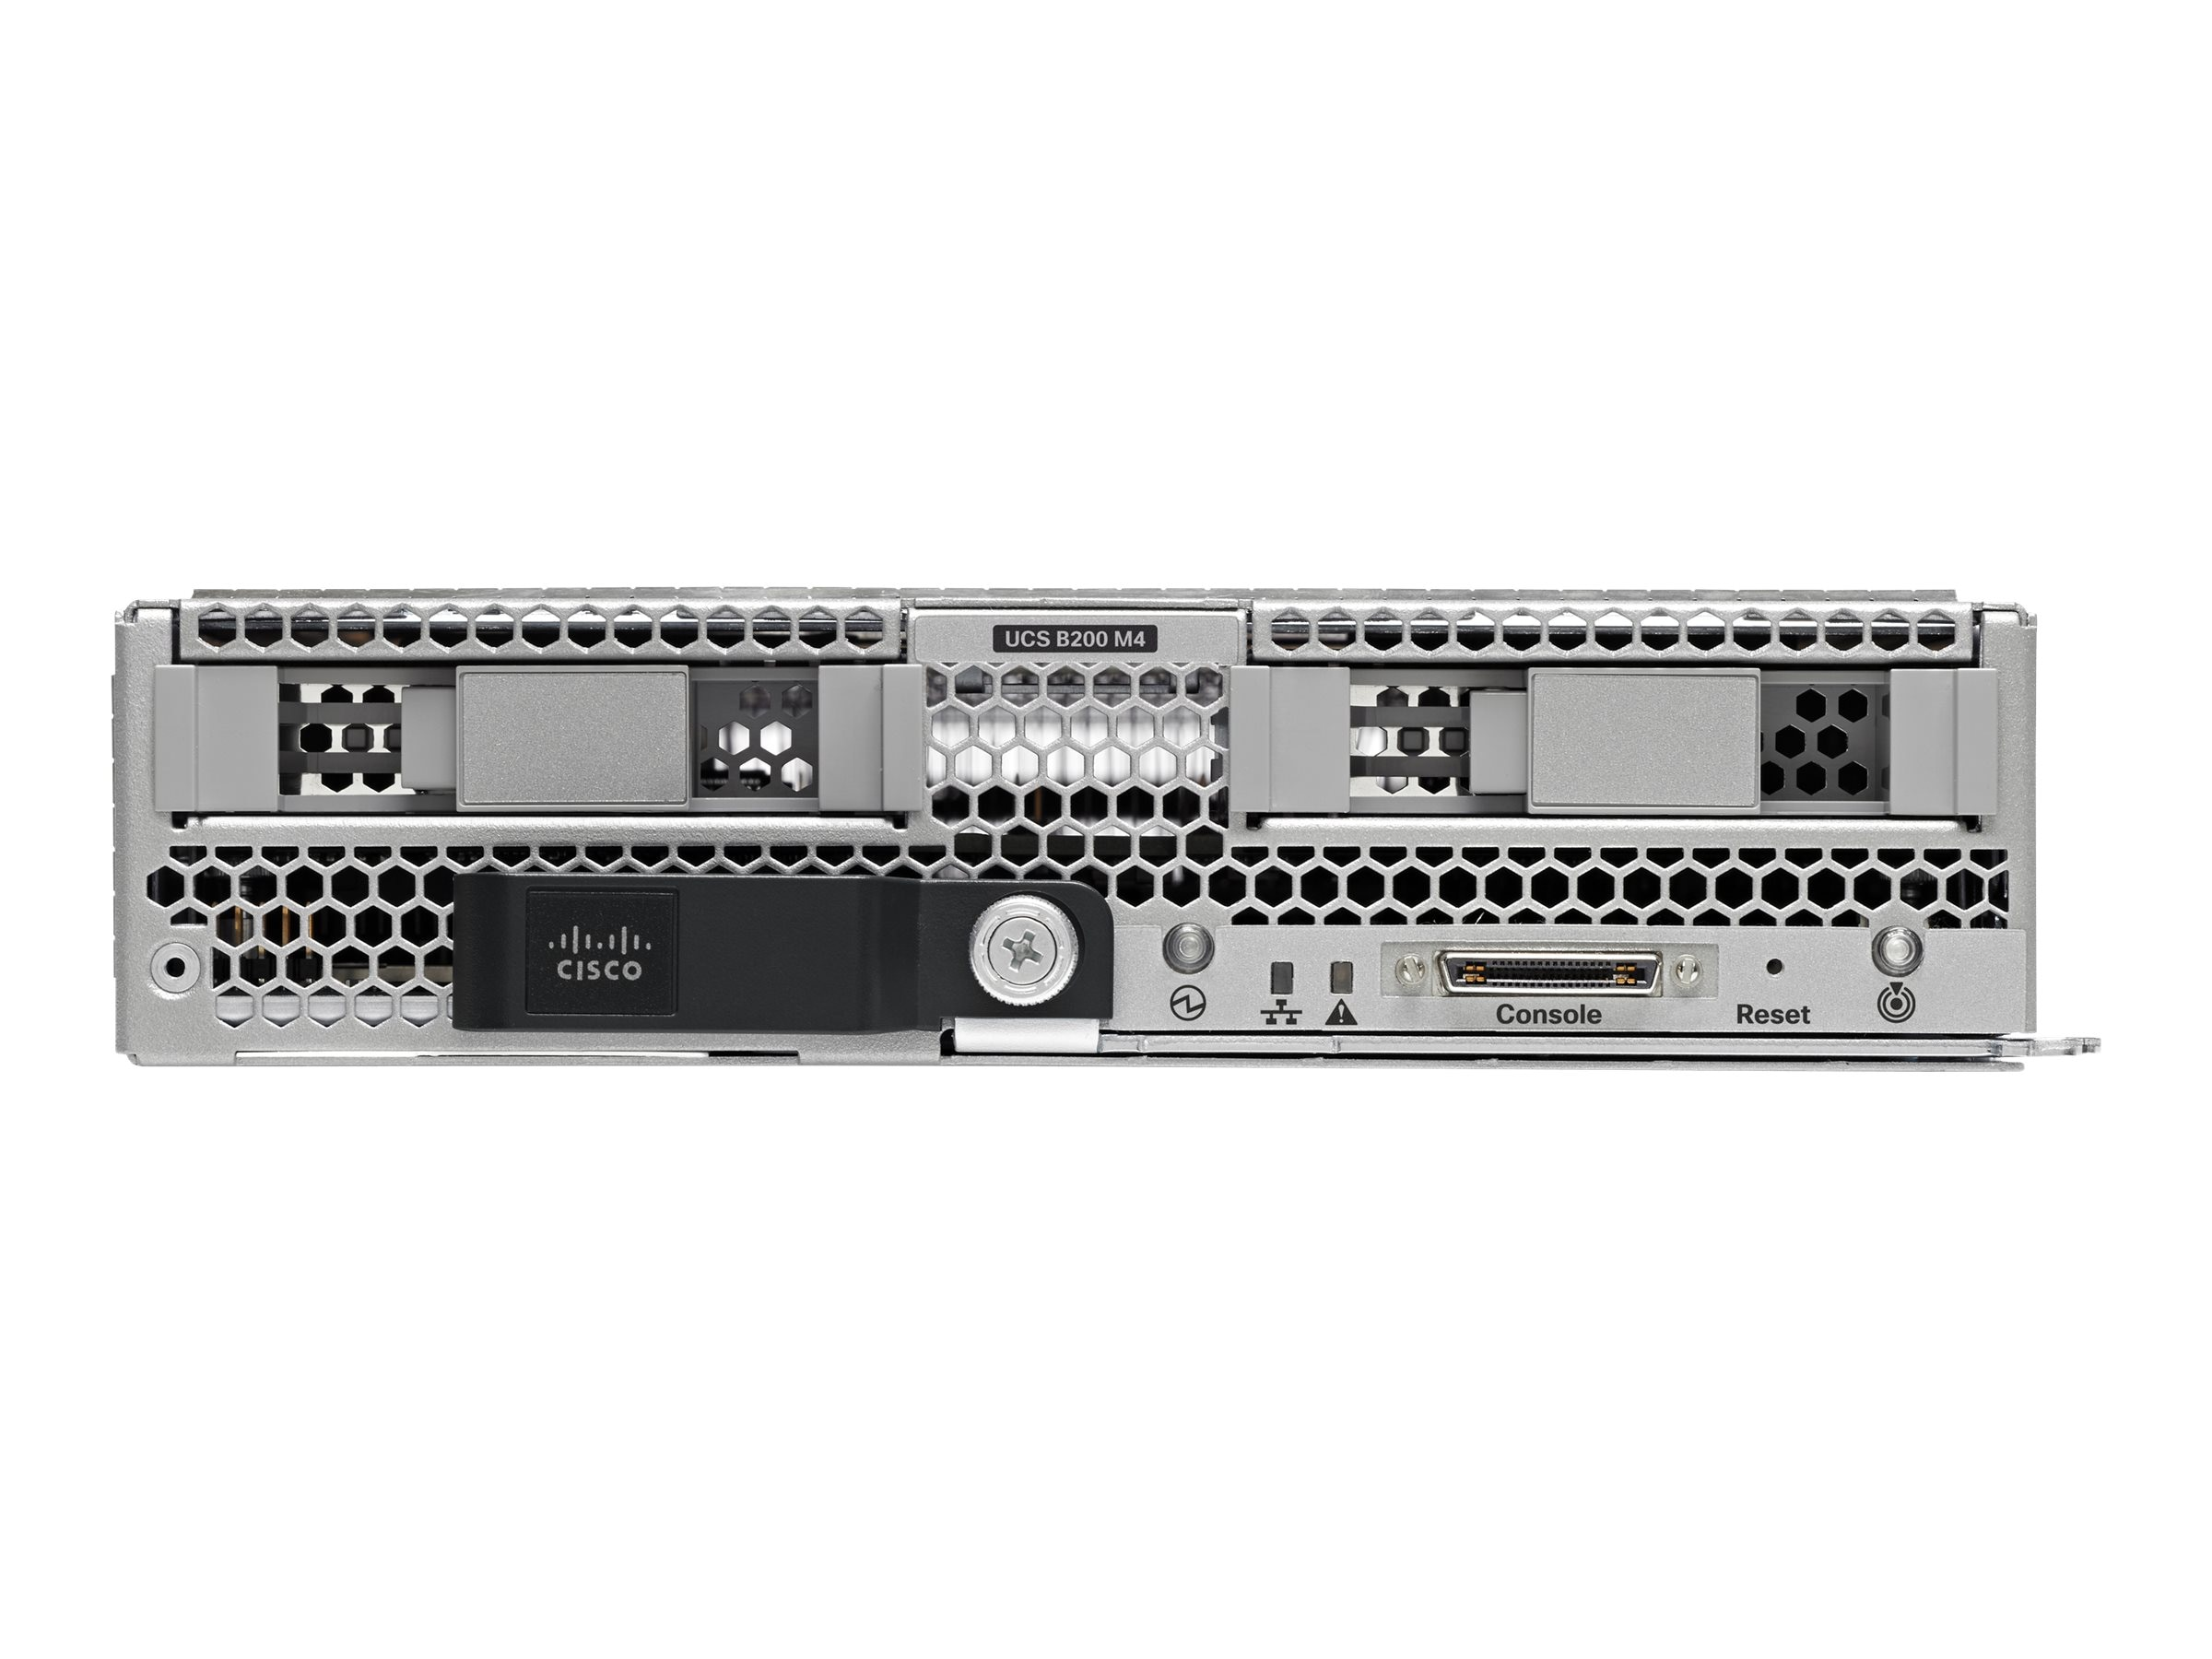 Cisco UCS B200 M4 Adv3 (2x)Xeon E5-2670 v3 8x32GB VIC1340, UCS-SP-B200M4-A3T, 30930479, Servers - Blade